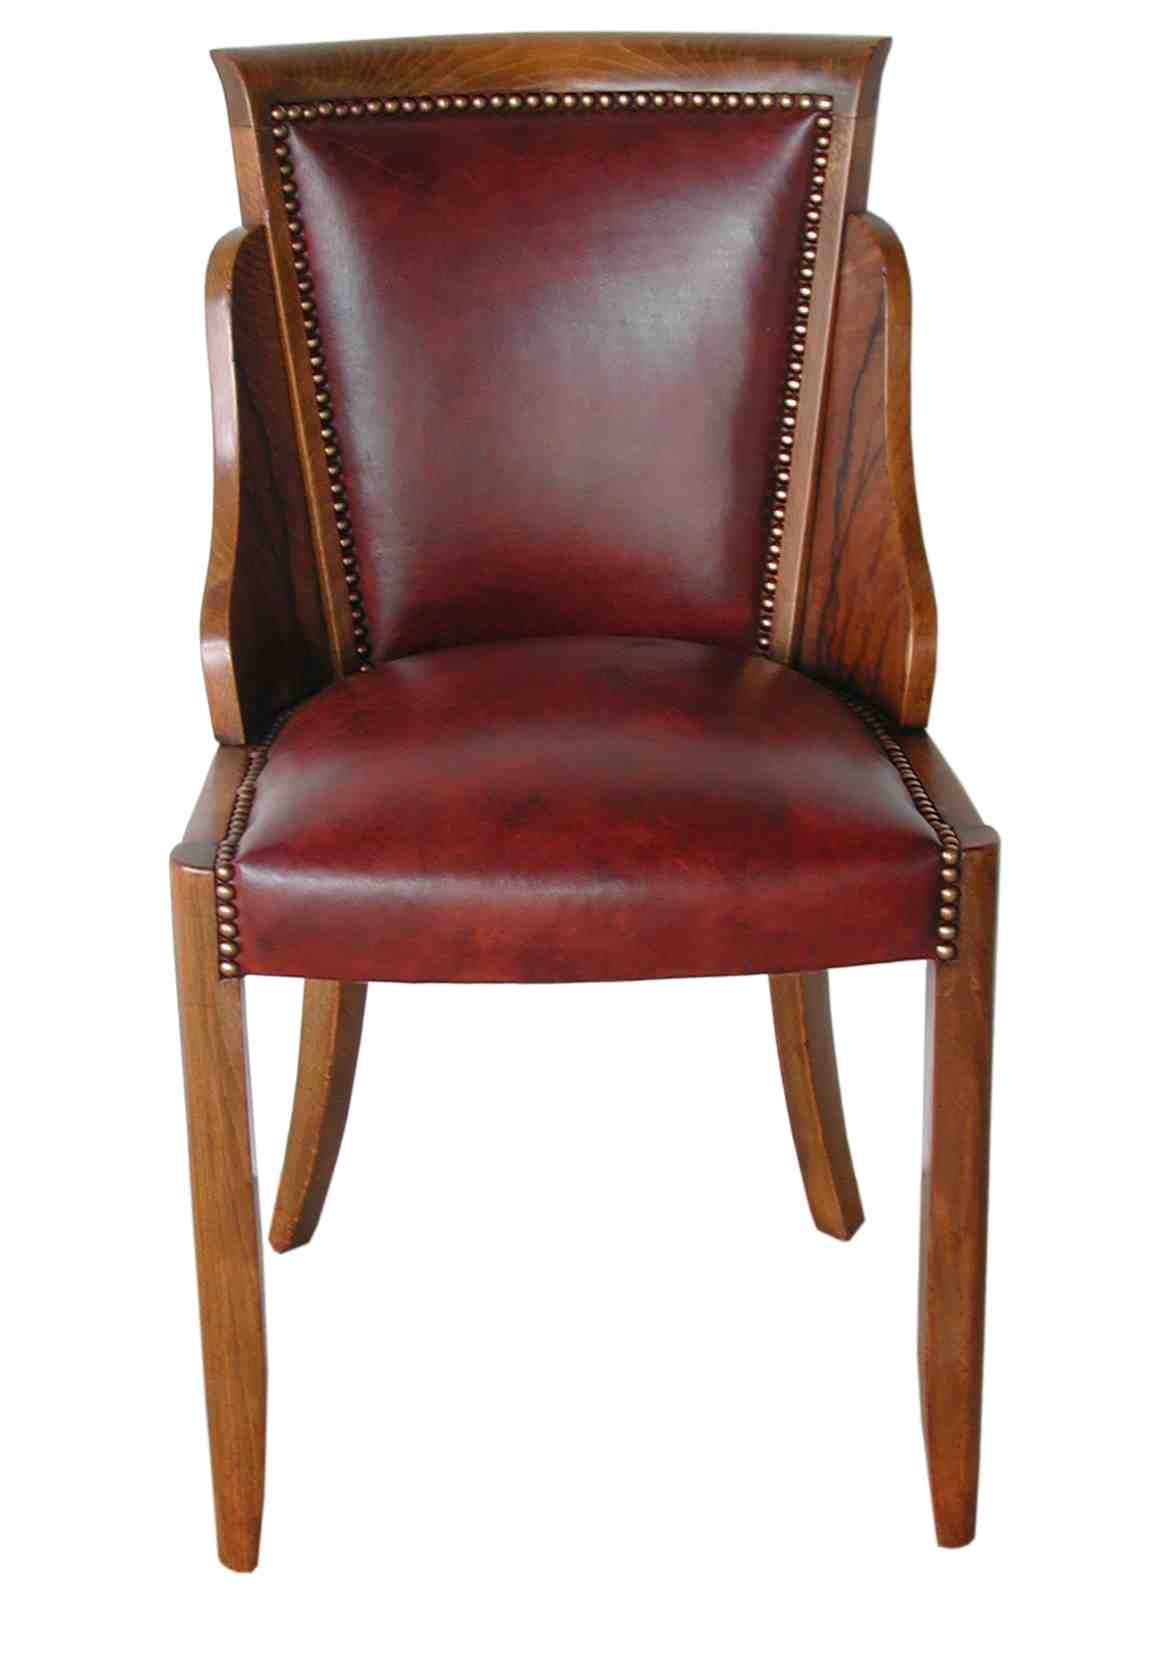 Leather dining chairs ikea leather dining chairs pinterest leather dining chairs ikea dzzzfo